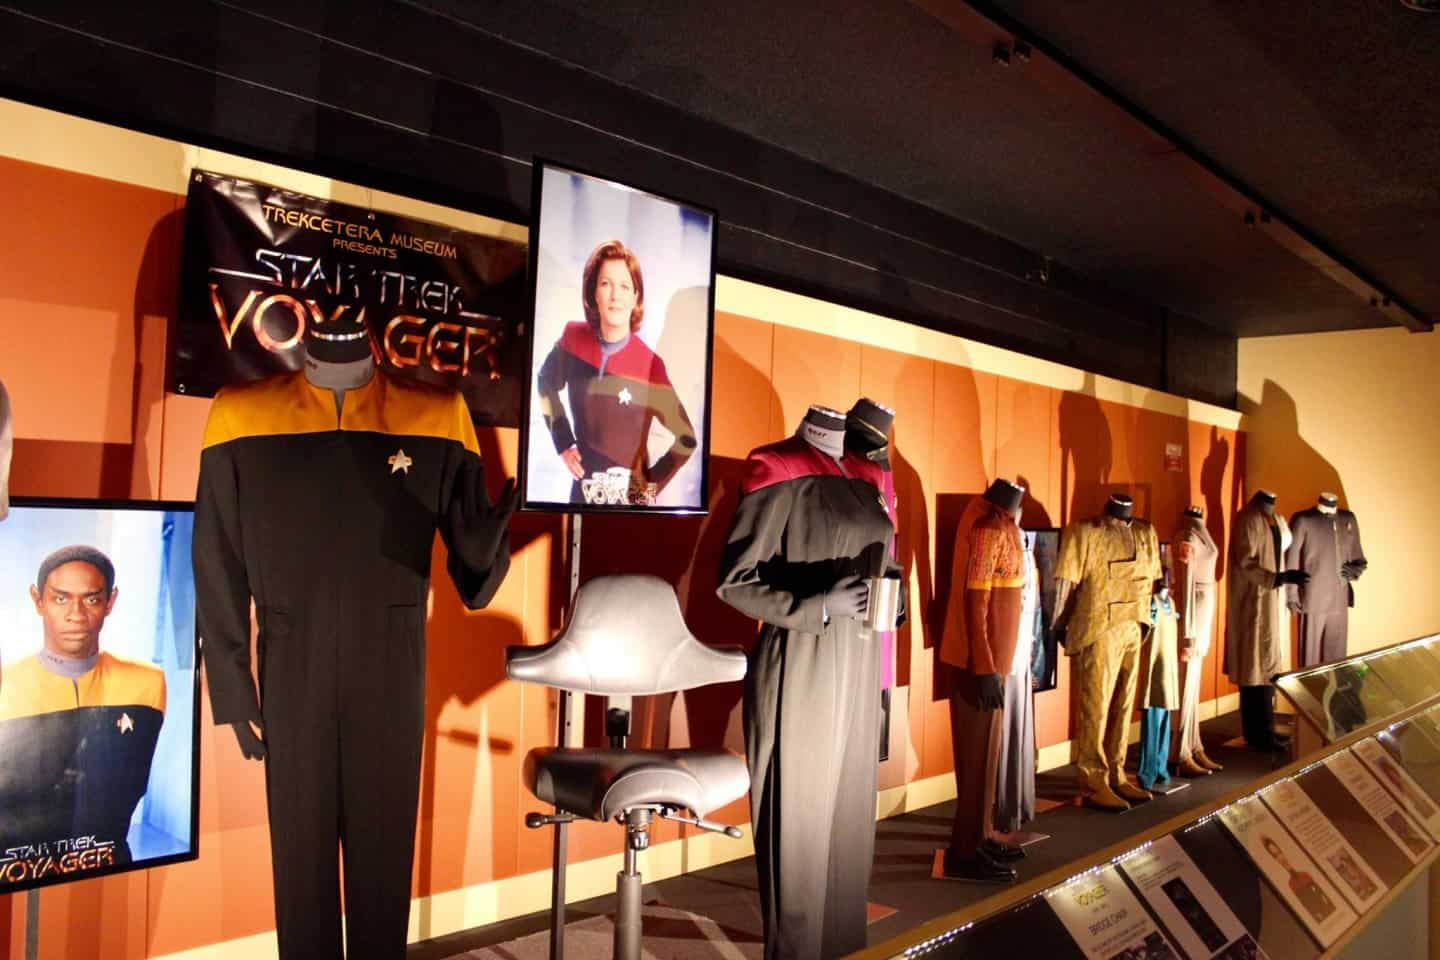 Costumes from Star Trek Voyageur